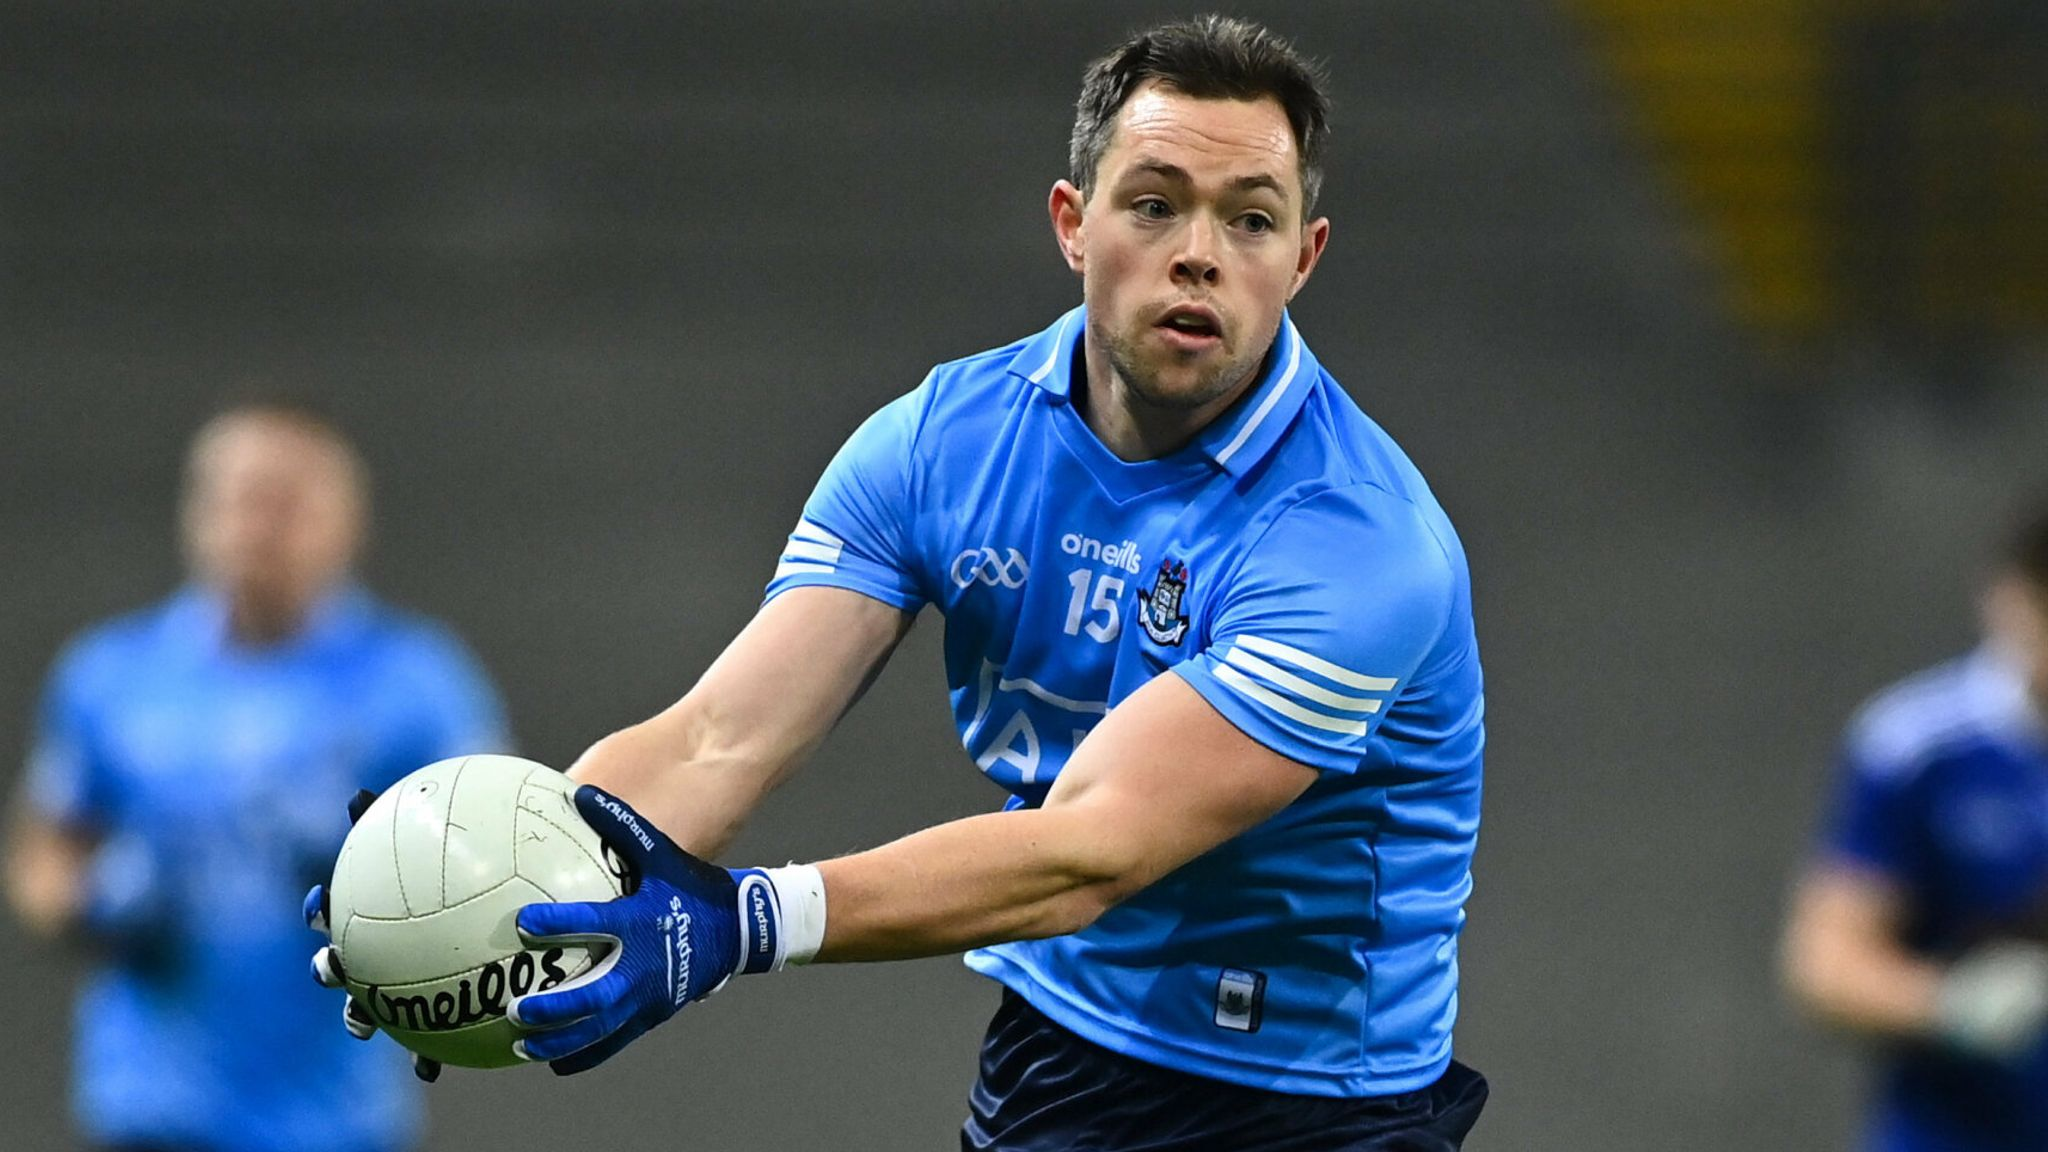 Gaa player of the year betting line aiding abetting